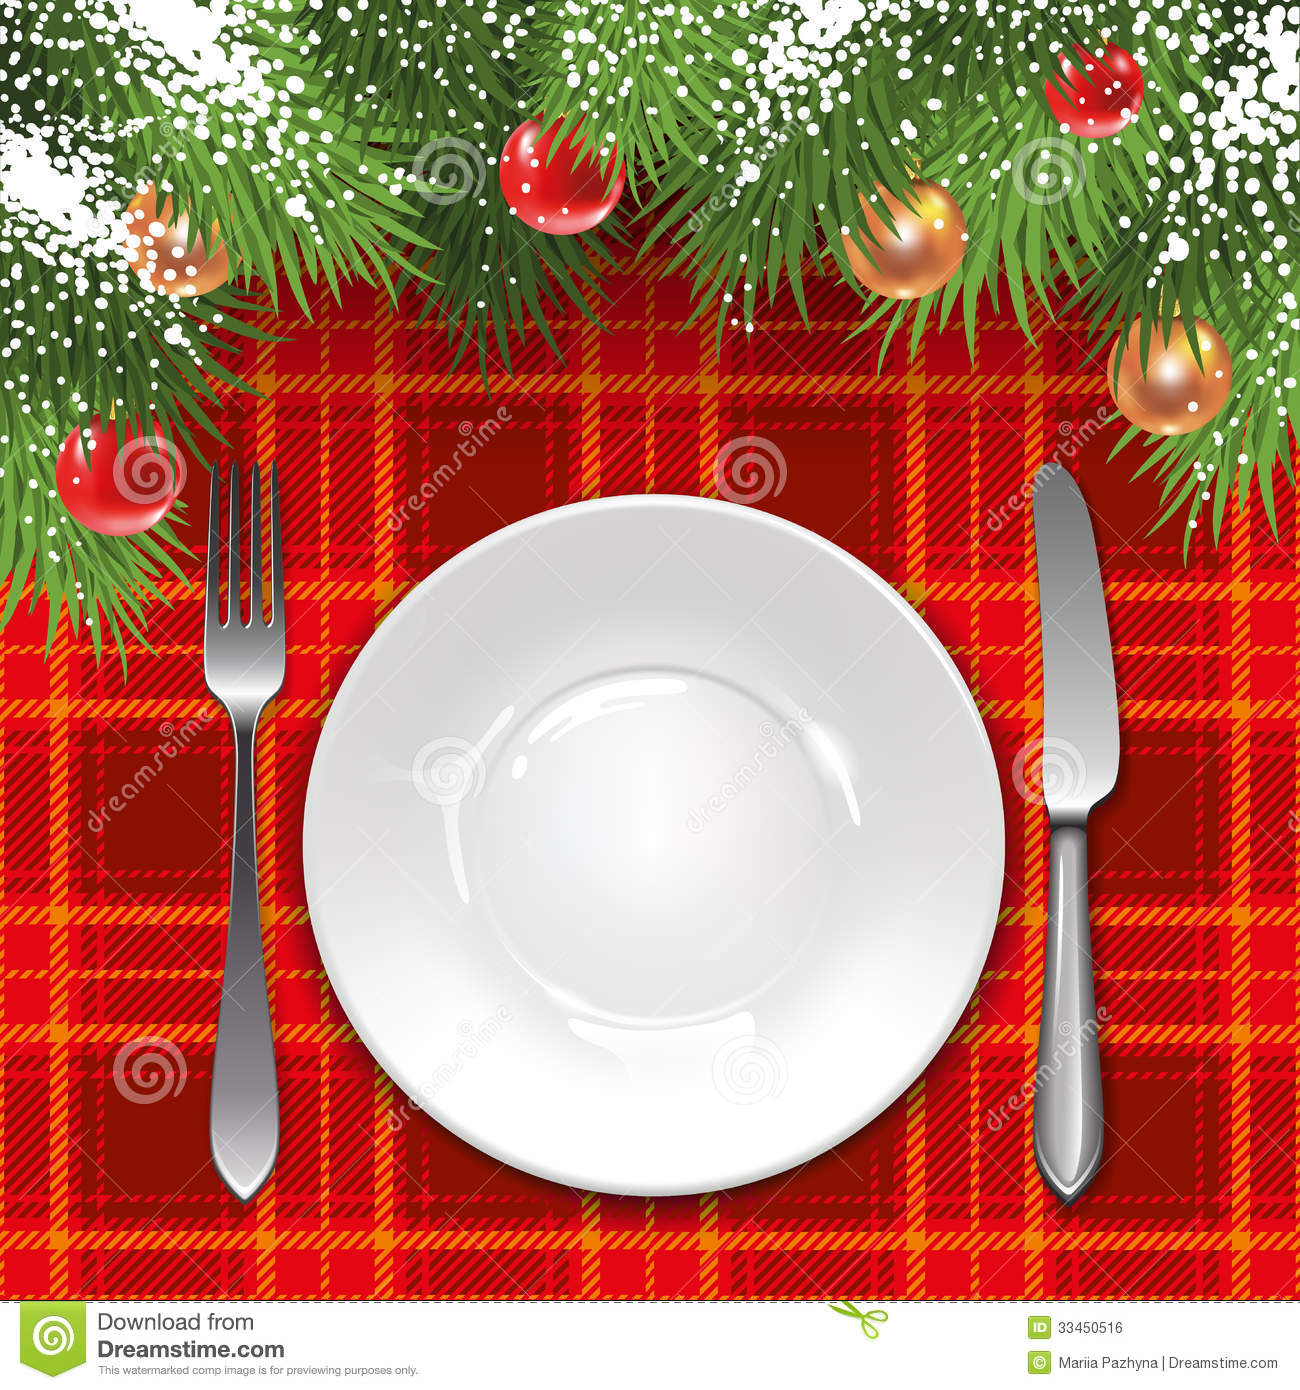 Christmas menu template stock vector. Illustration of merry - 33450516